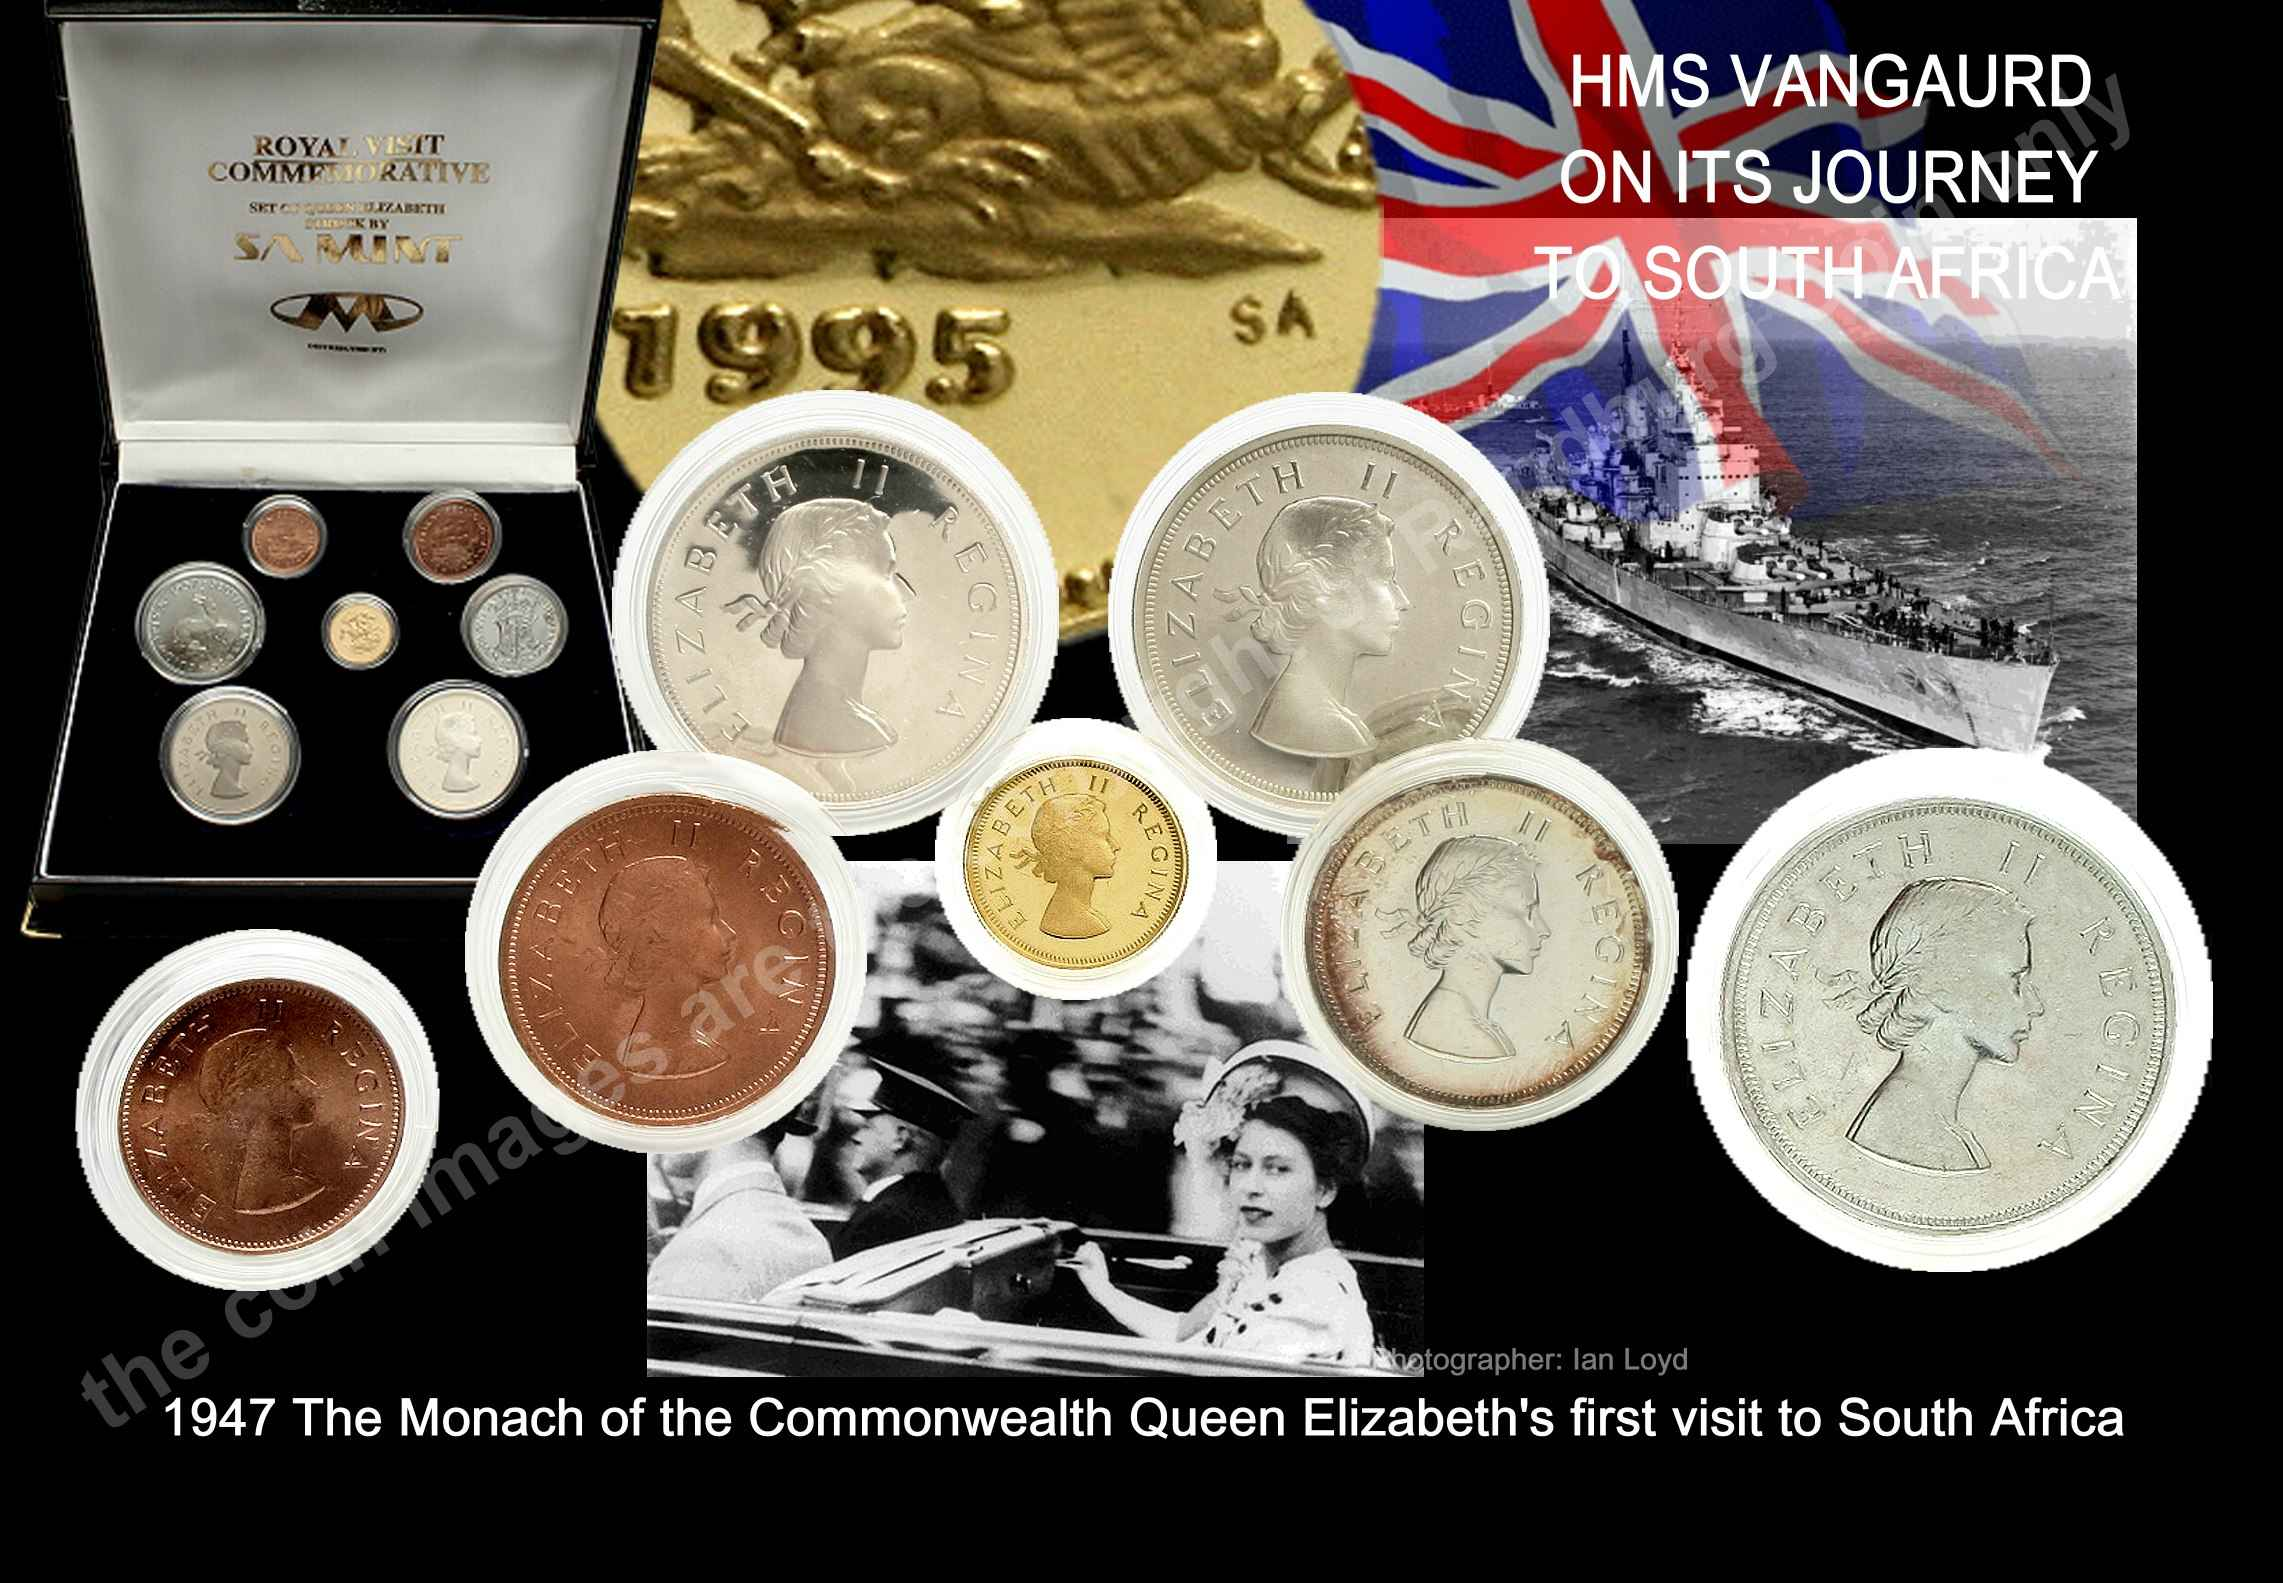 1995_Gold_Silver_Union_Coins_Royal_Visit_Commemorative_Set_with_Medallions_ob.jpg